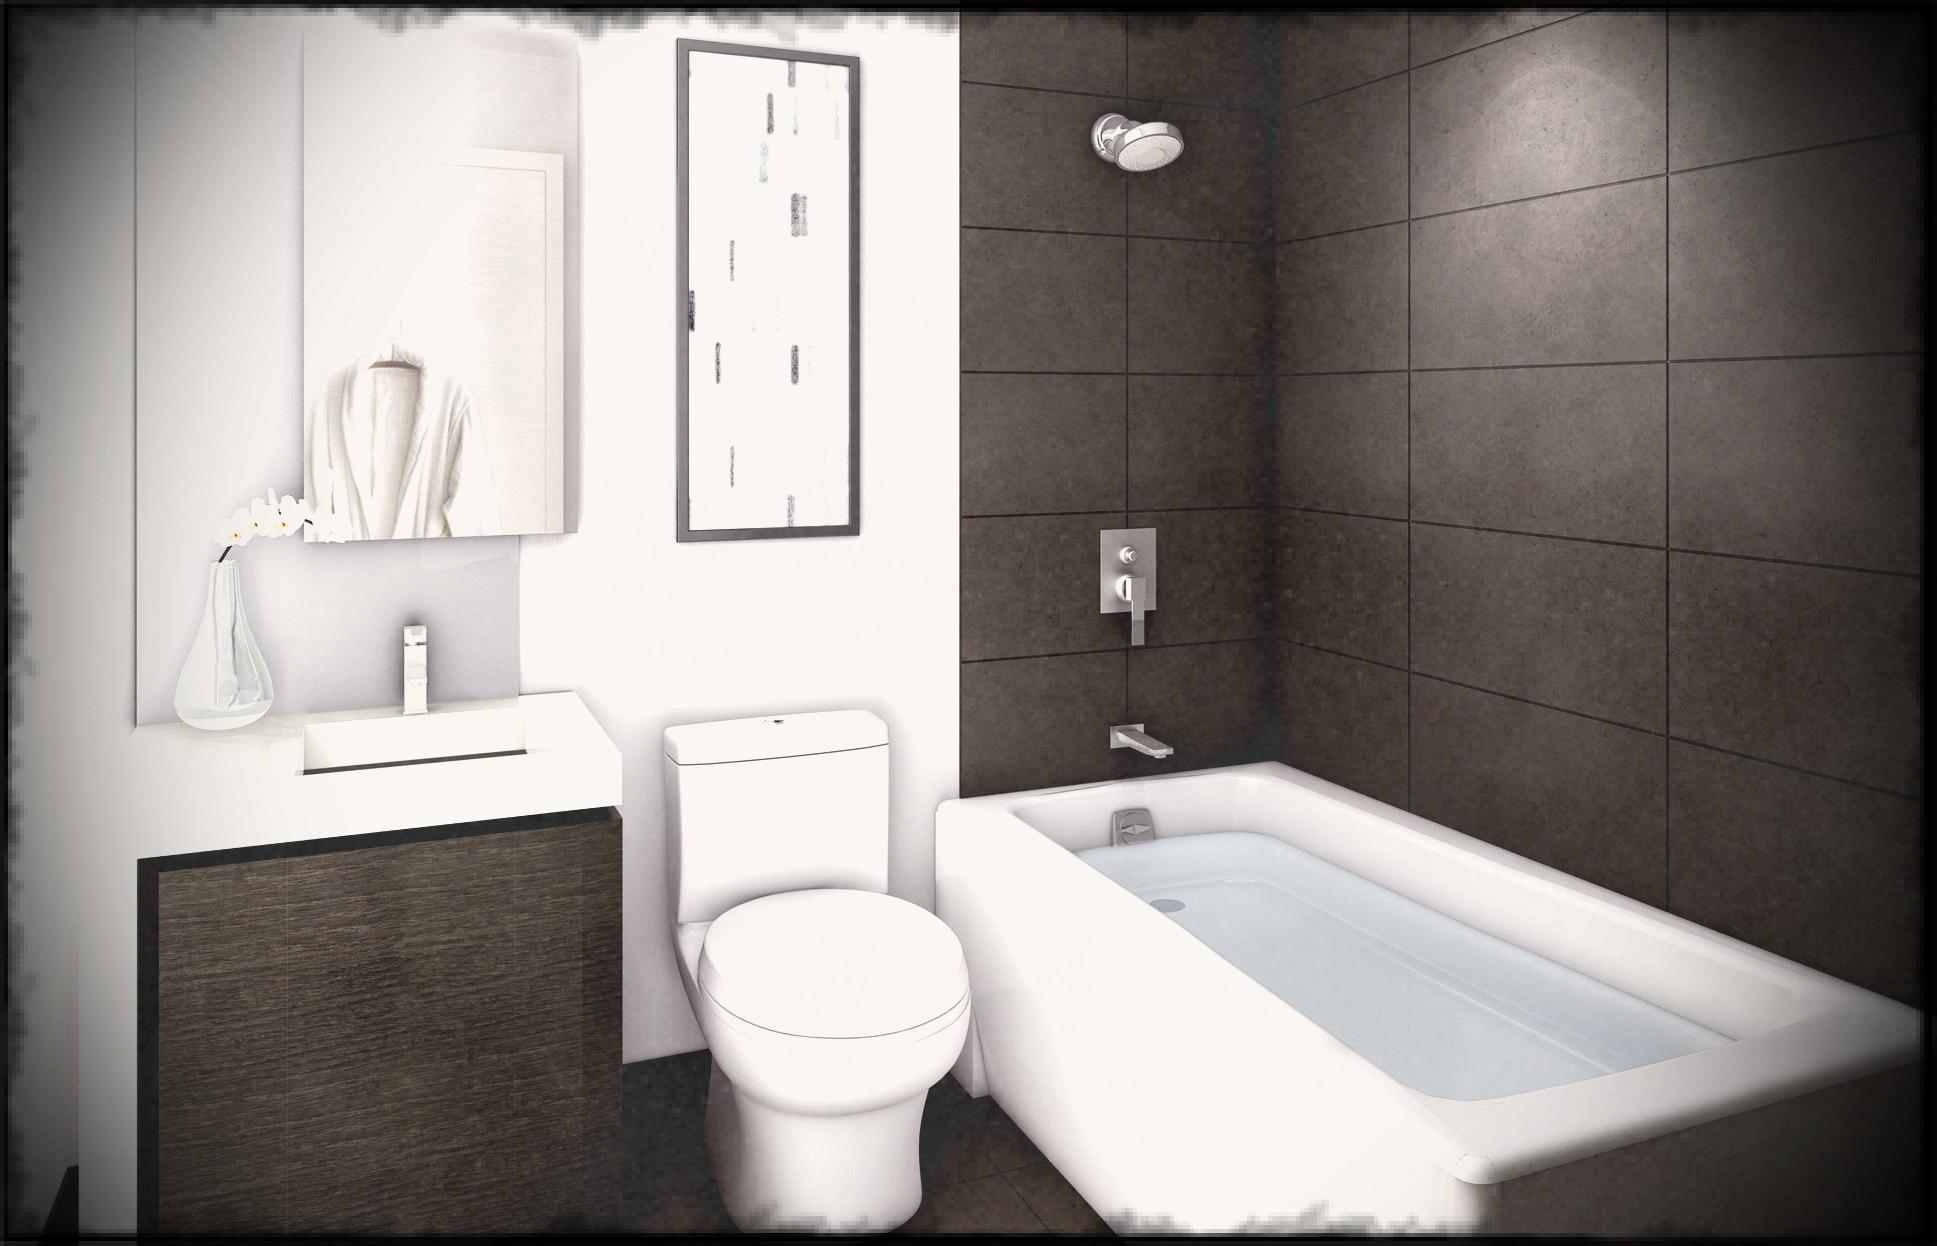 ... Modern Bathroom Idea With White Bathtup Also Toilet  ... Part 82